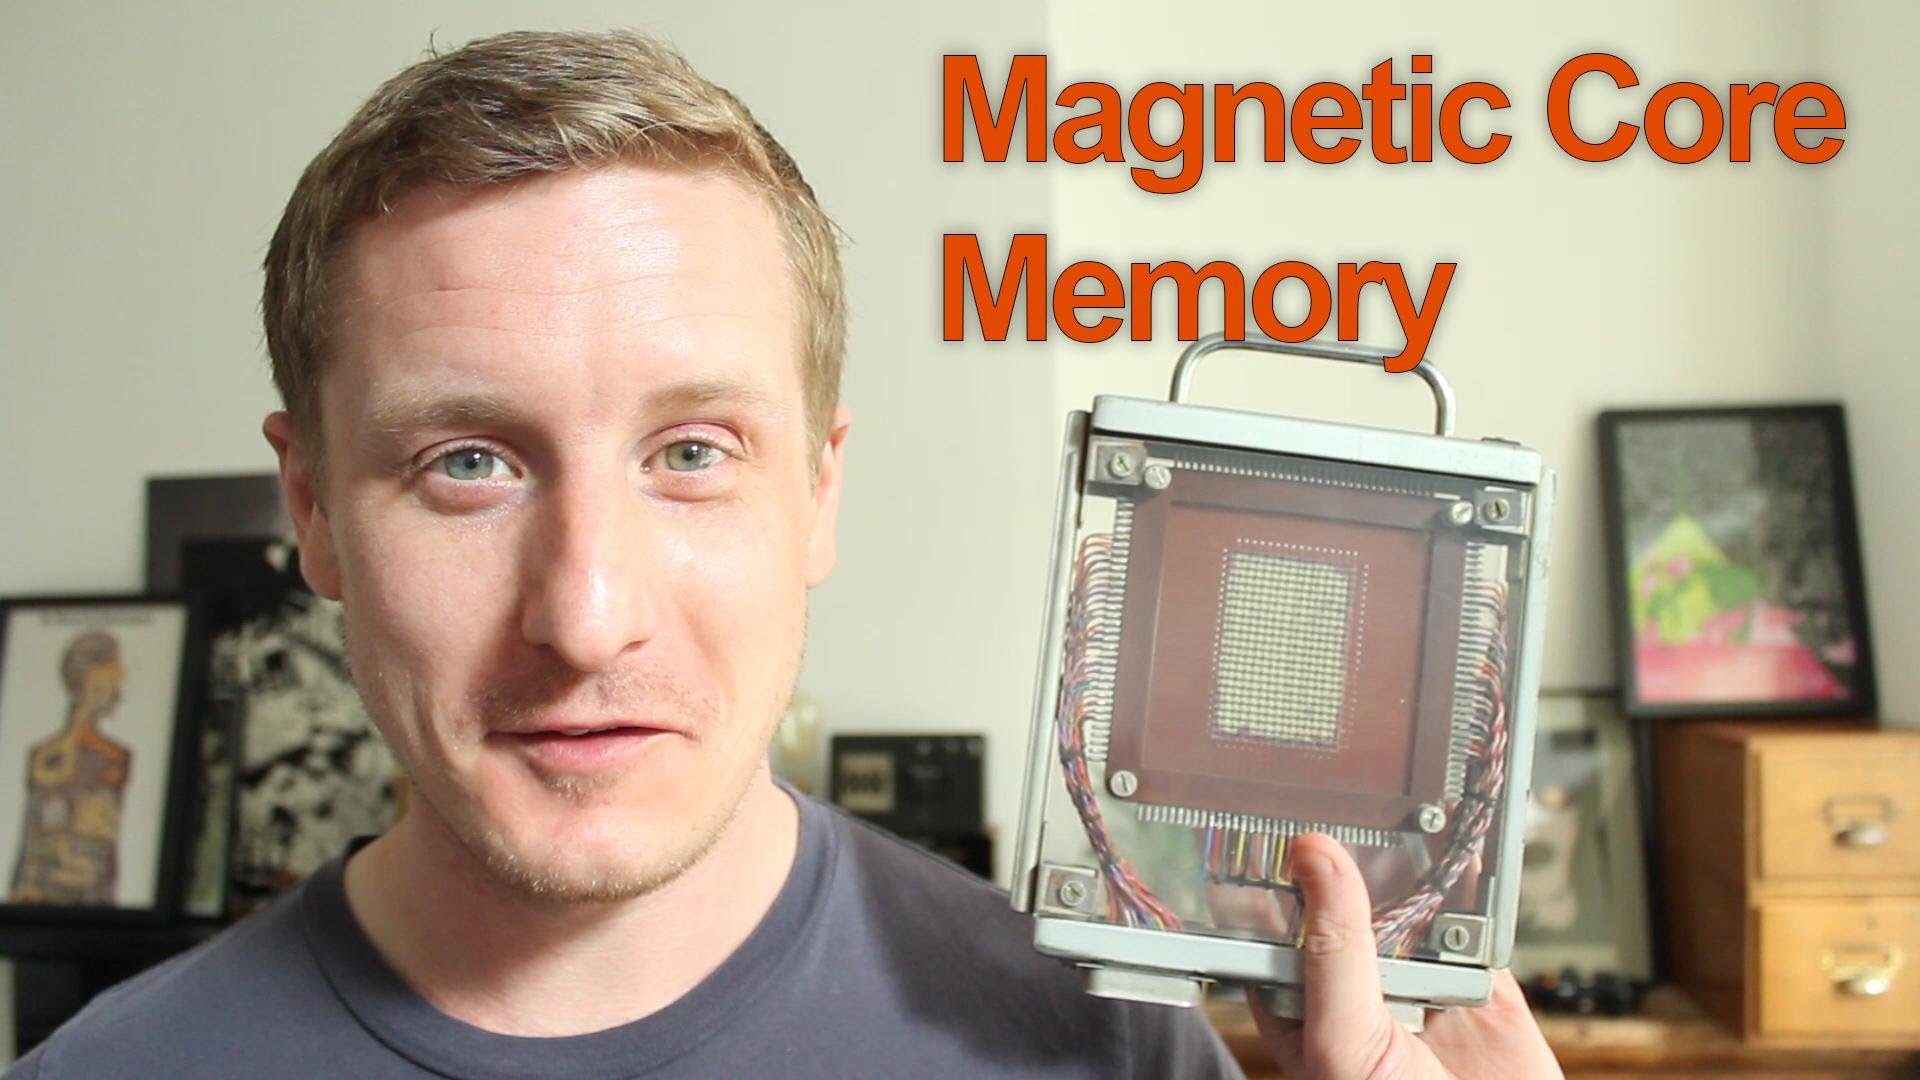 1920x1080 > Magnetic-core Memory Wallpapers